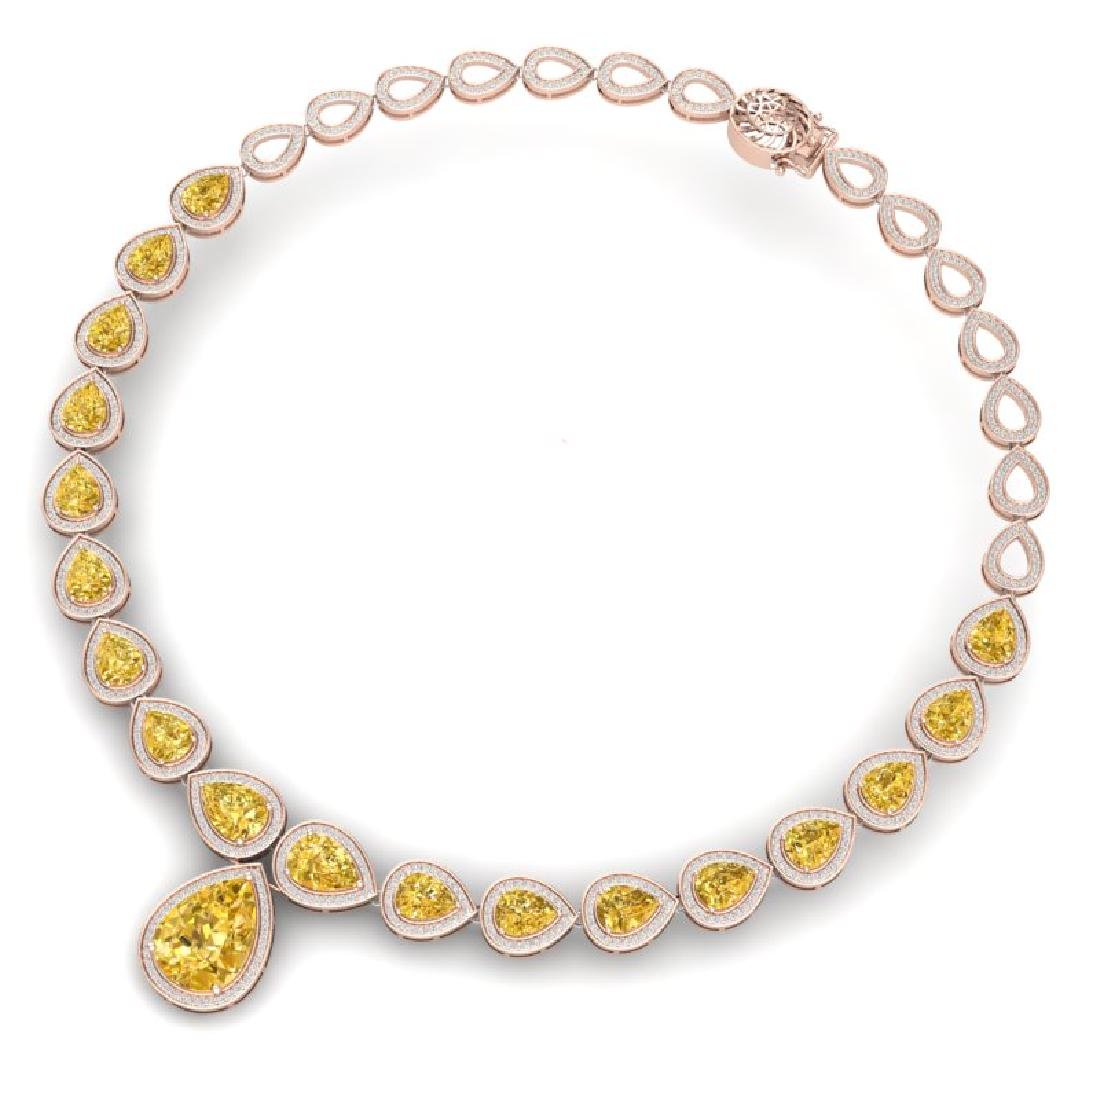 48.24 CTW Royalty Canary Citrine & VS Diamond Necklace - 3